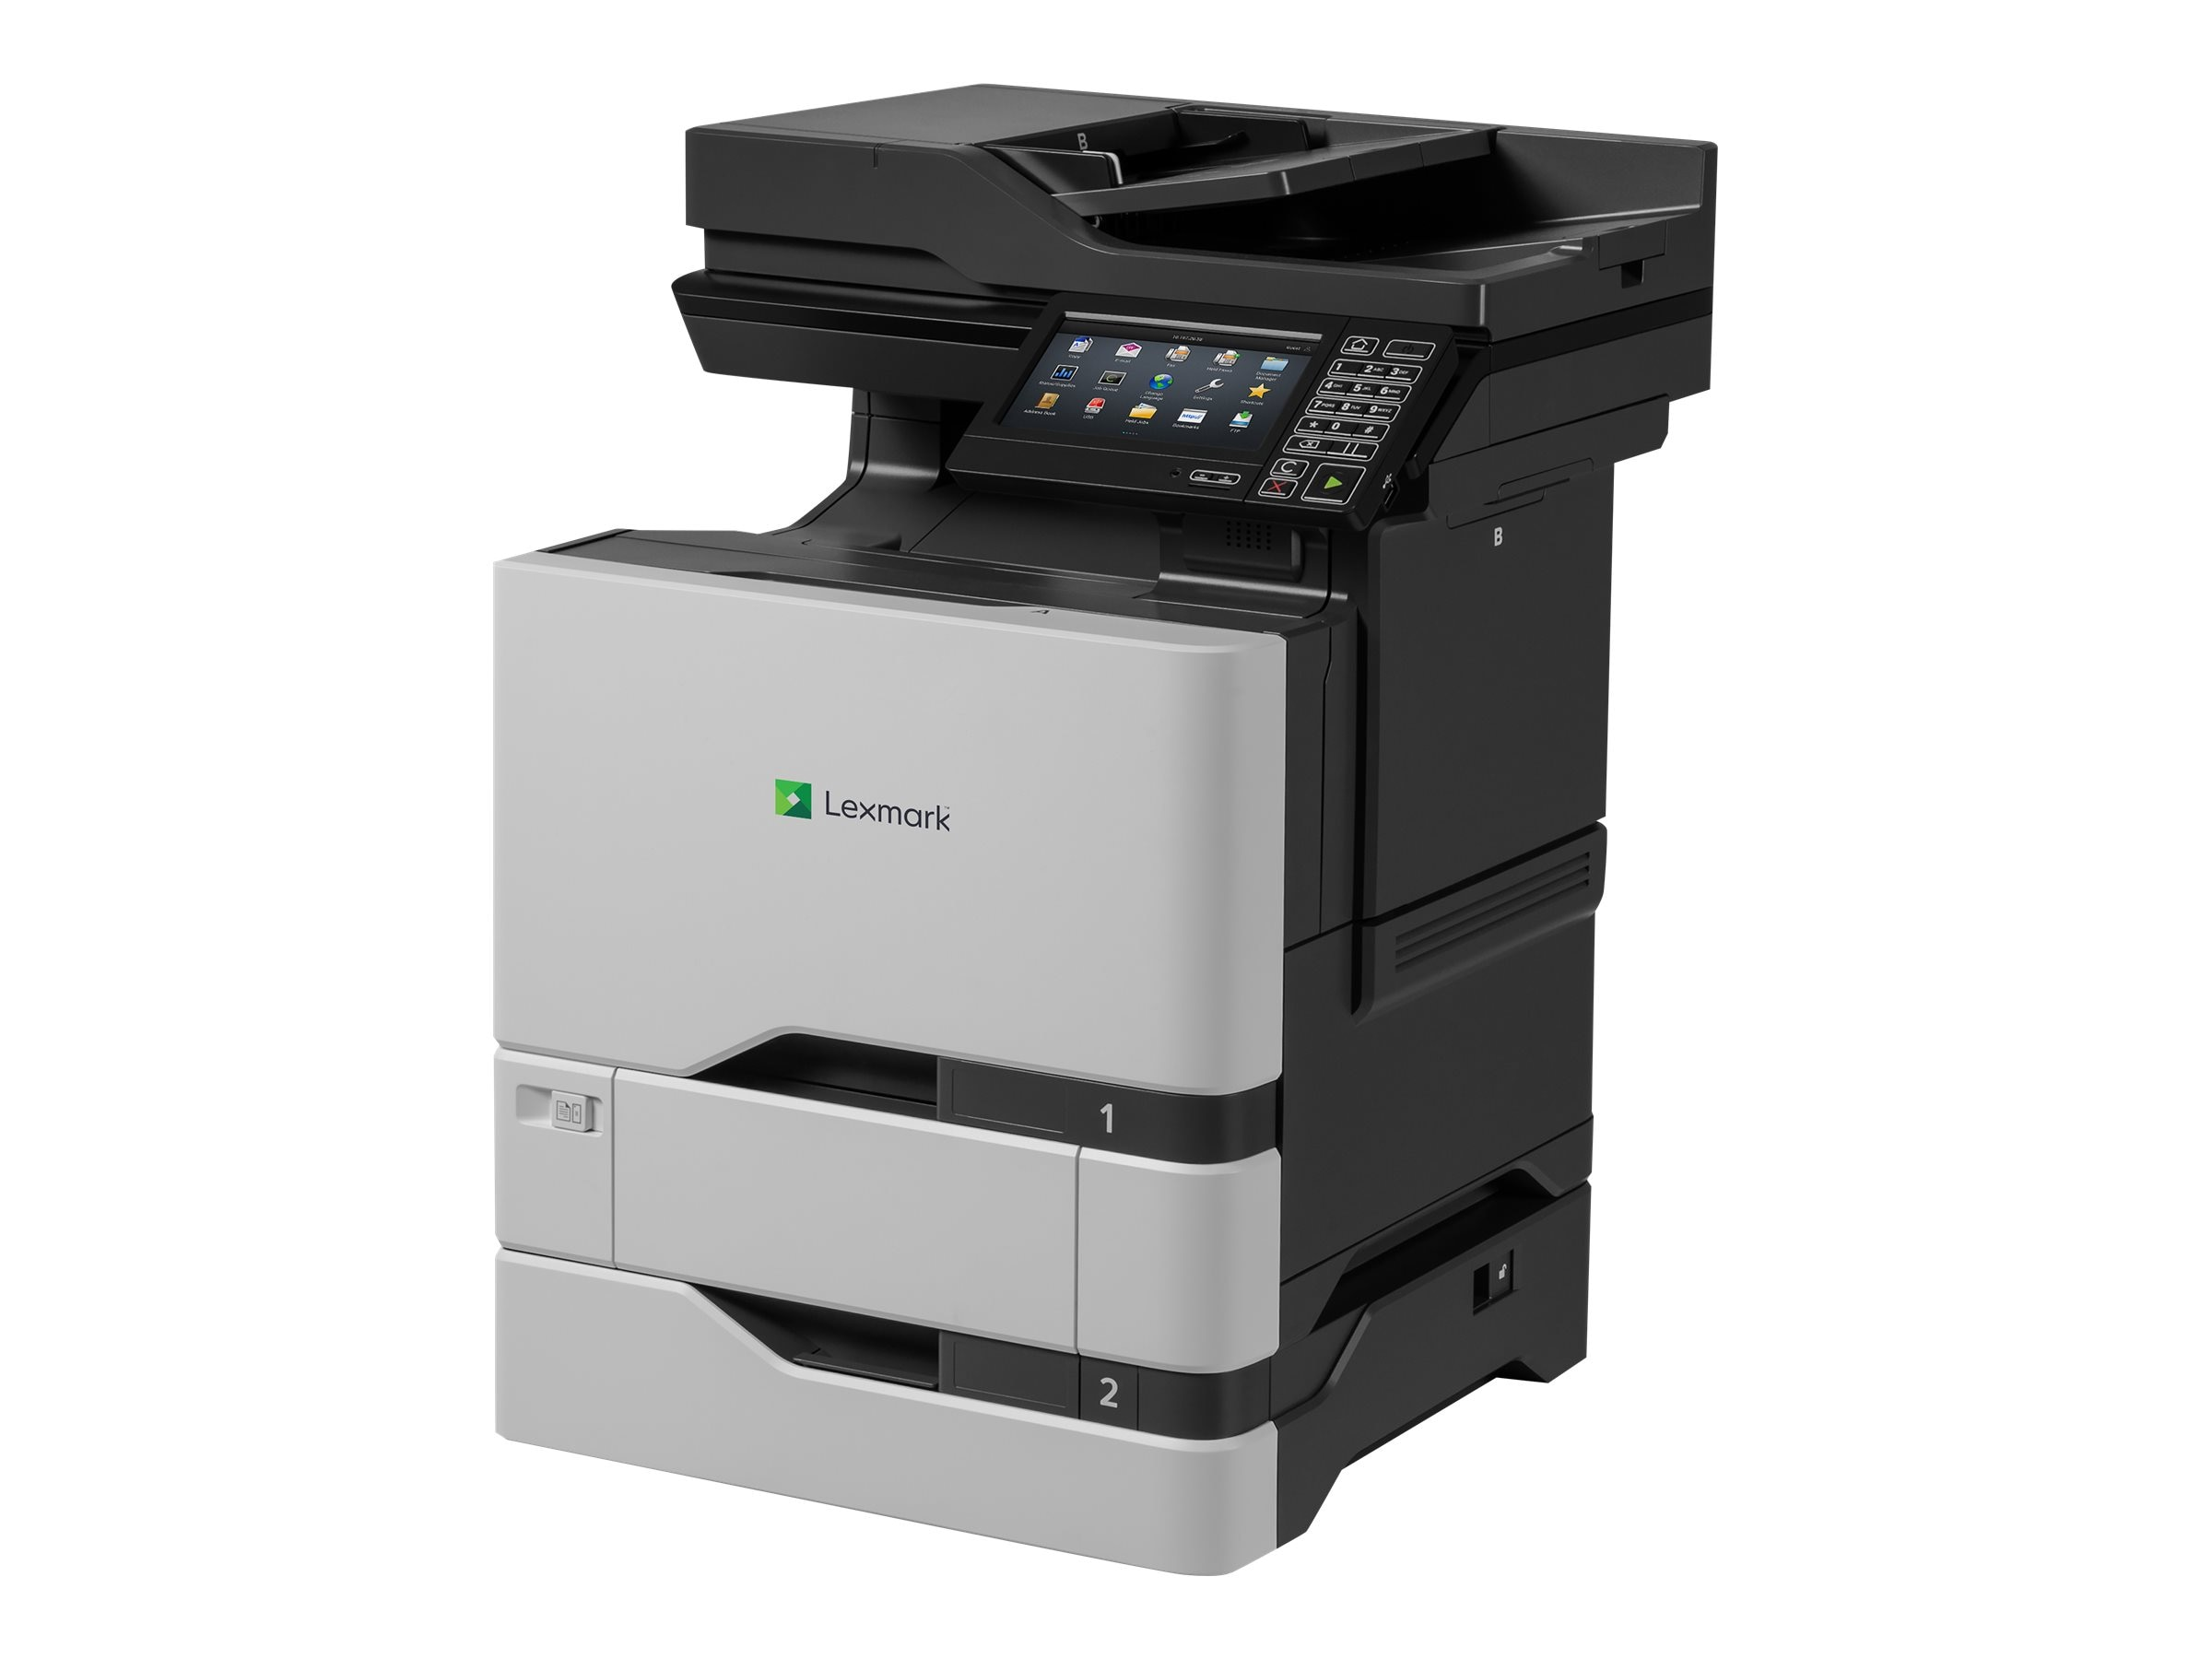 Lexmark CS720dte Color Laser Printer (TAA Compliant)